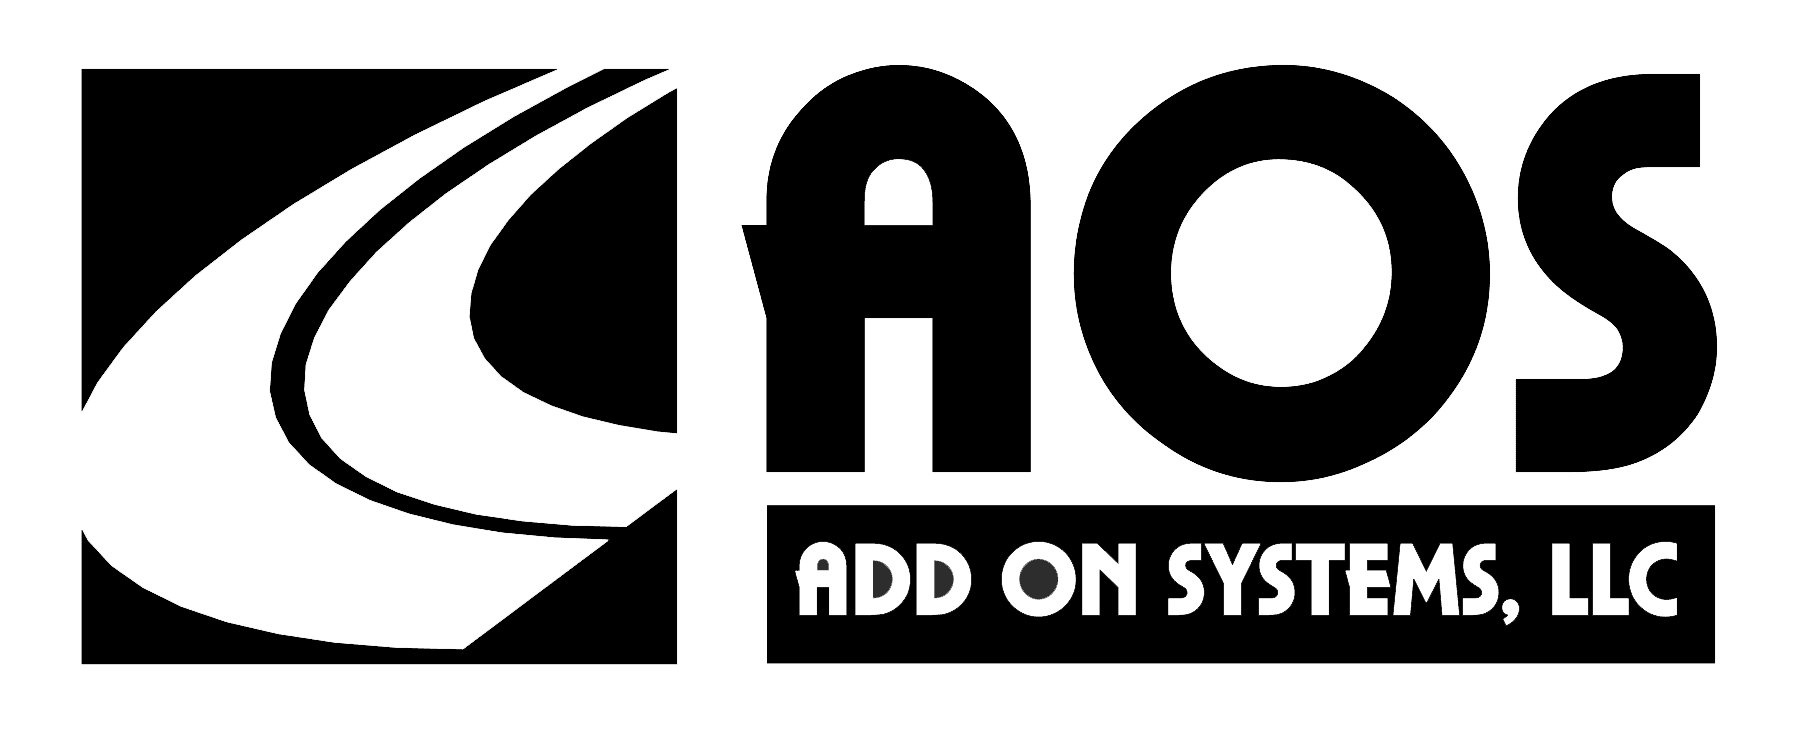 Add On Systems